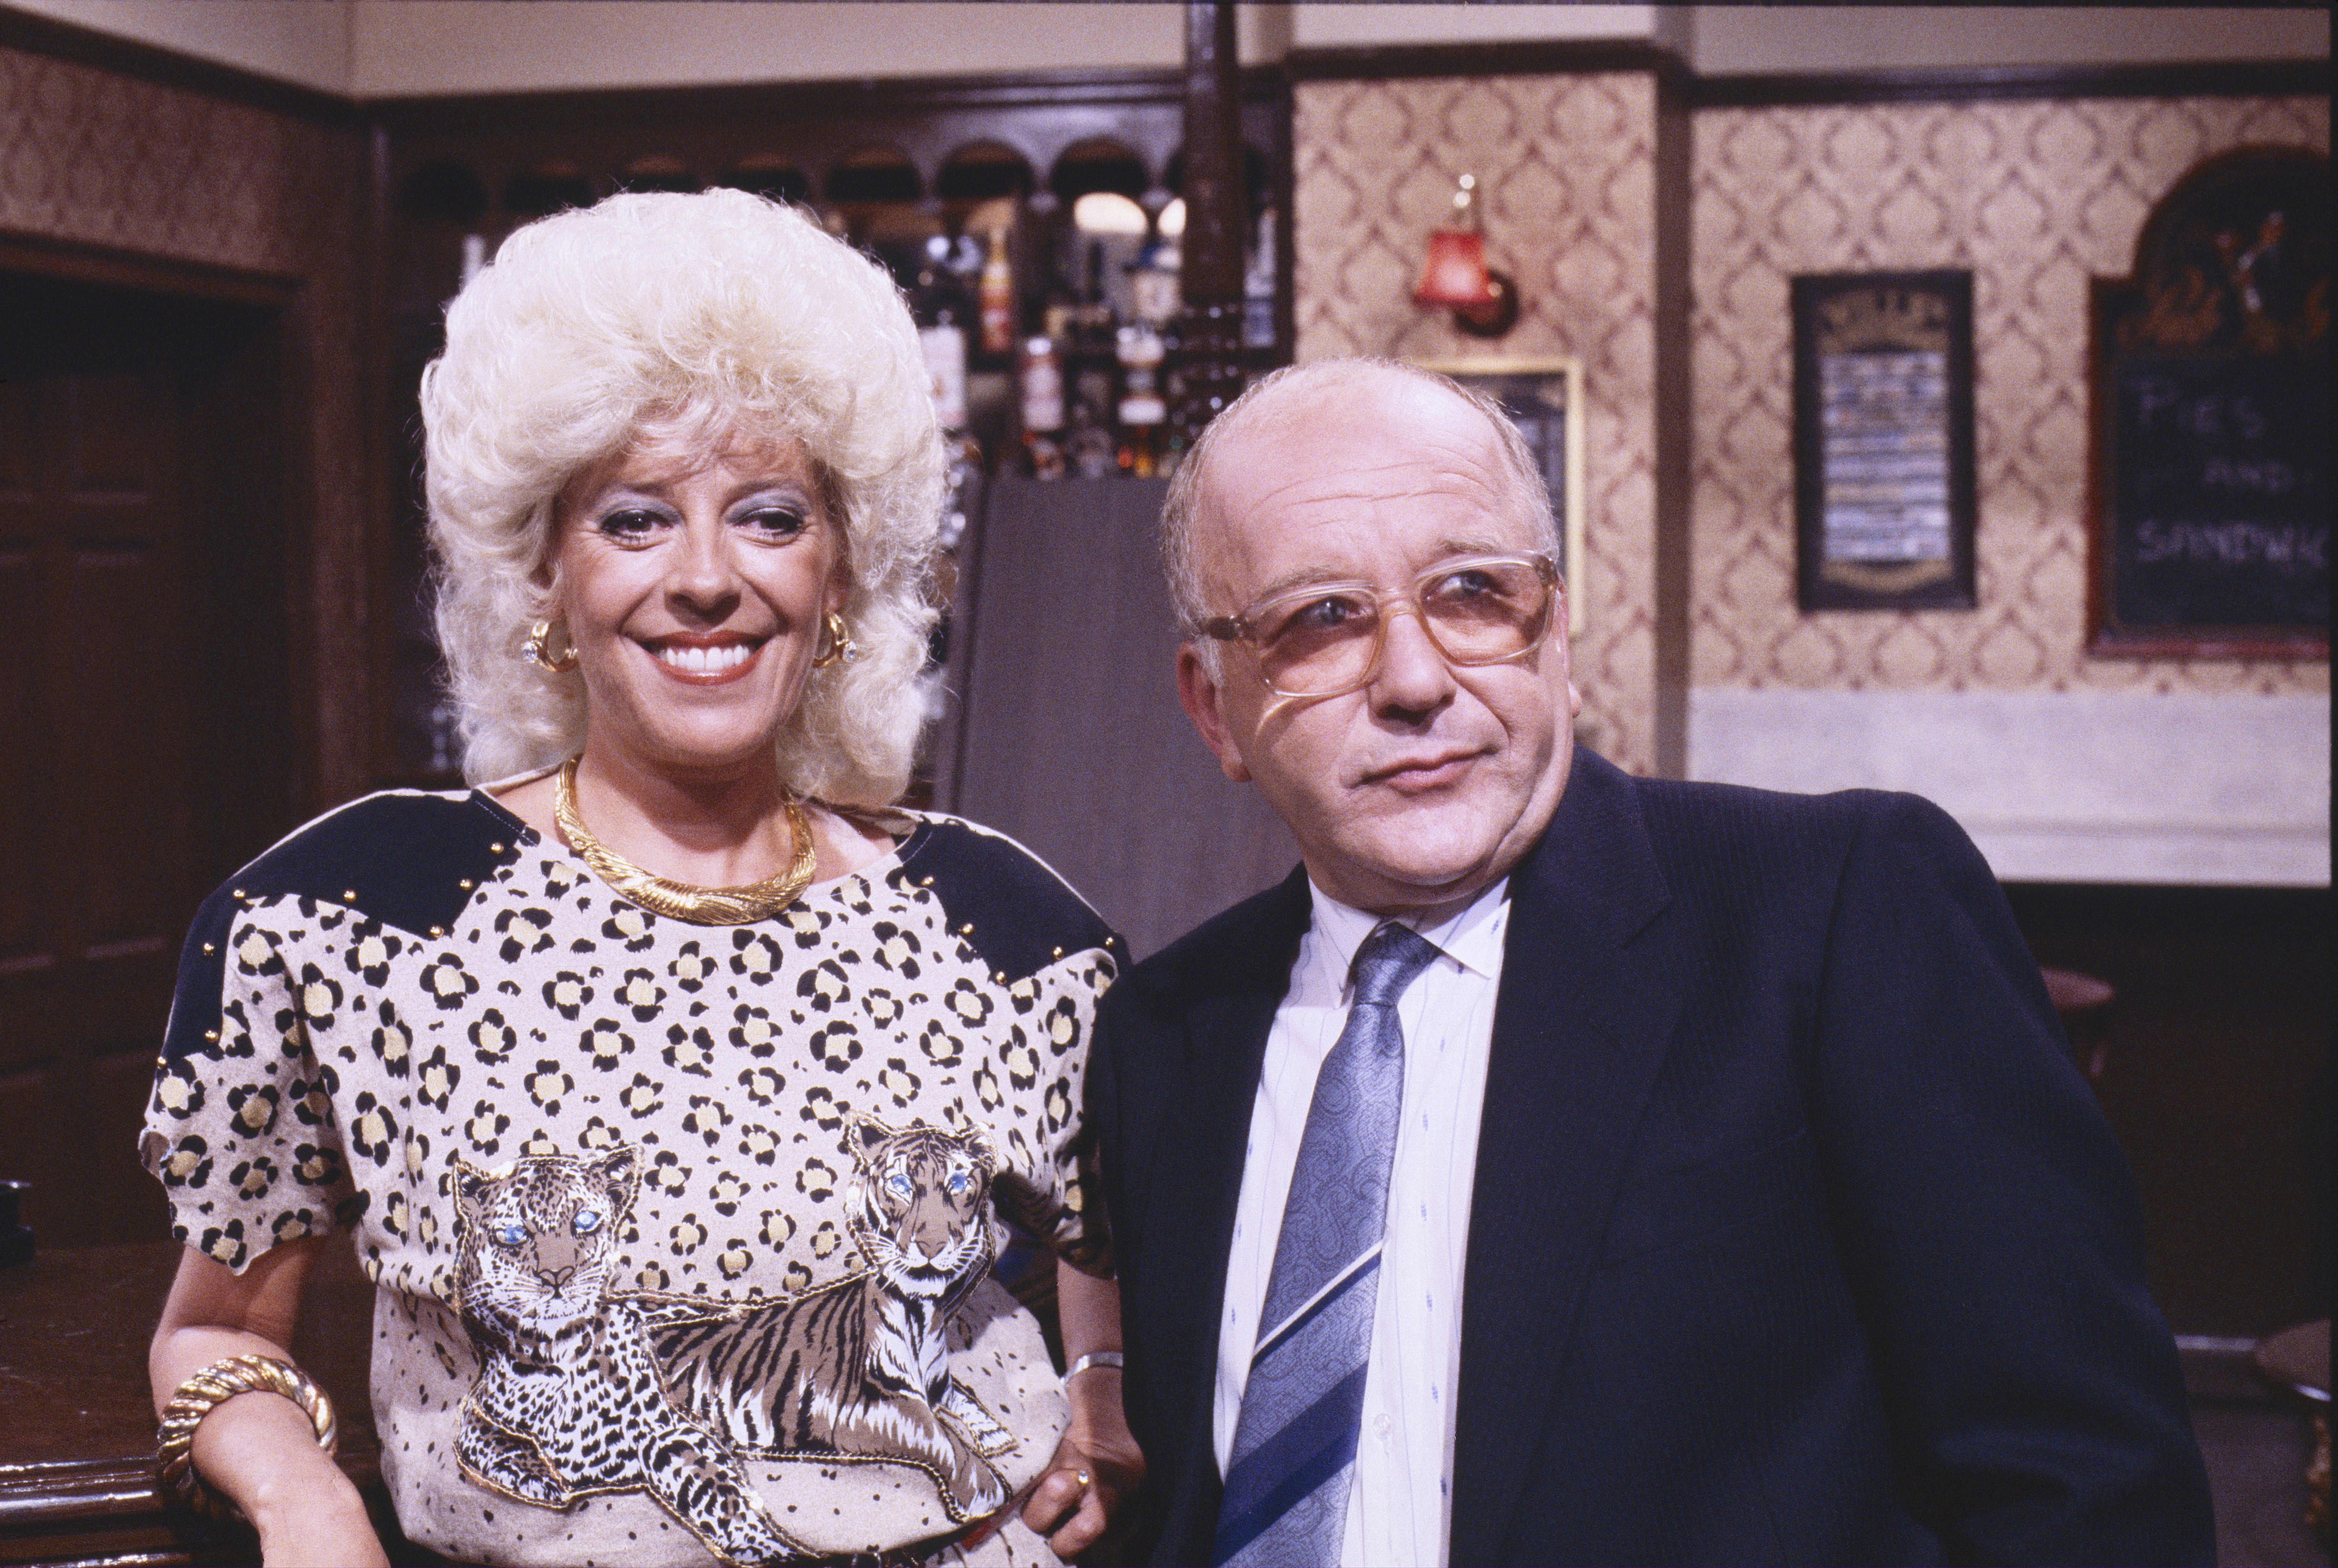 """Editorial use only Mandatory Credit: Photo by ITV/REX/Shutterstock (8811957cr) Julie Goodyear (as Bet Gilroy) and Roy Barraclough (as Alec Gilroy) """"Coronation Street"""" TV series - 1987 Coronation Street is a long running Television soap opera set in the fictional North of England town of Weatherfield. Created by Tony Warren. First broadcast on December 9th, 1960. Produced by ITV Granada."""